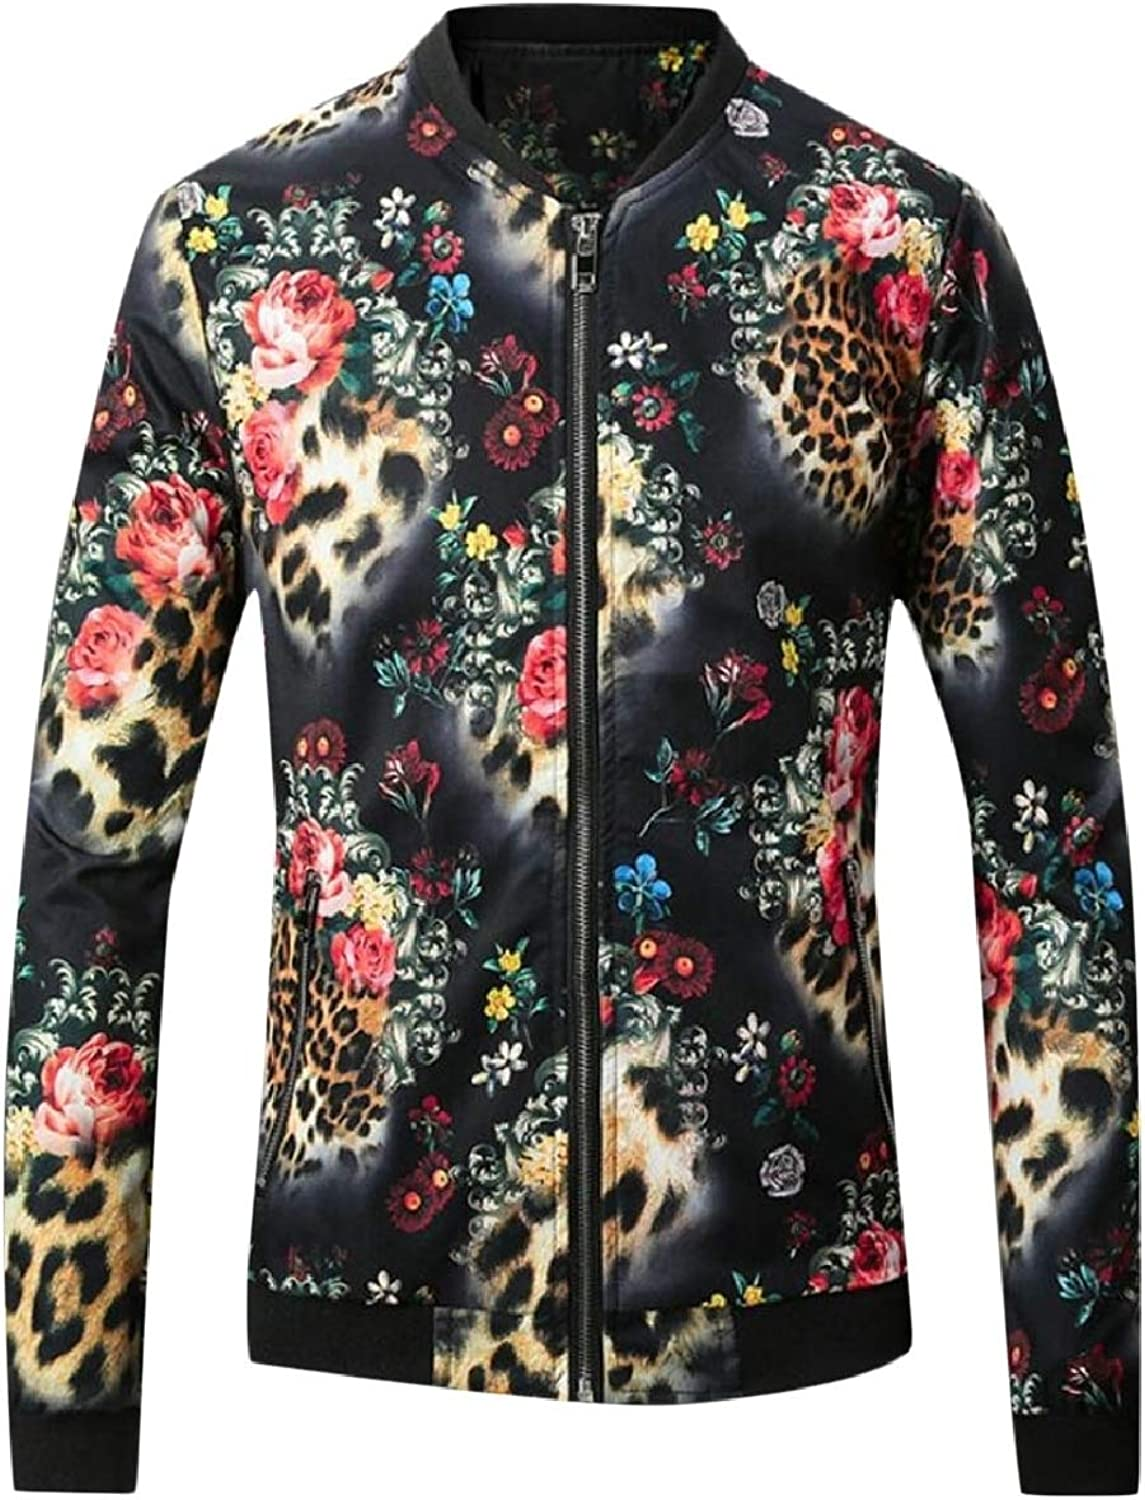 a613c3e6b ZXFHZS-CA Mens Tops Front-Zip Front-Zip Front-Zip Long Sleeve Slim Fit  Printing Jacket Outwears bc9673